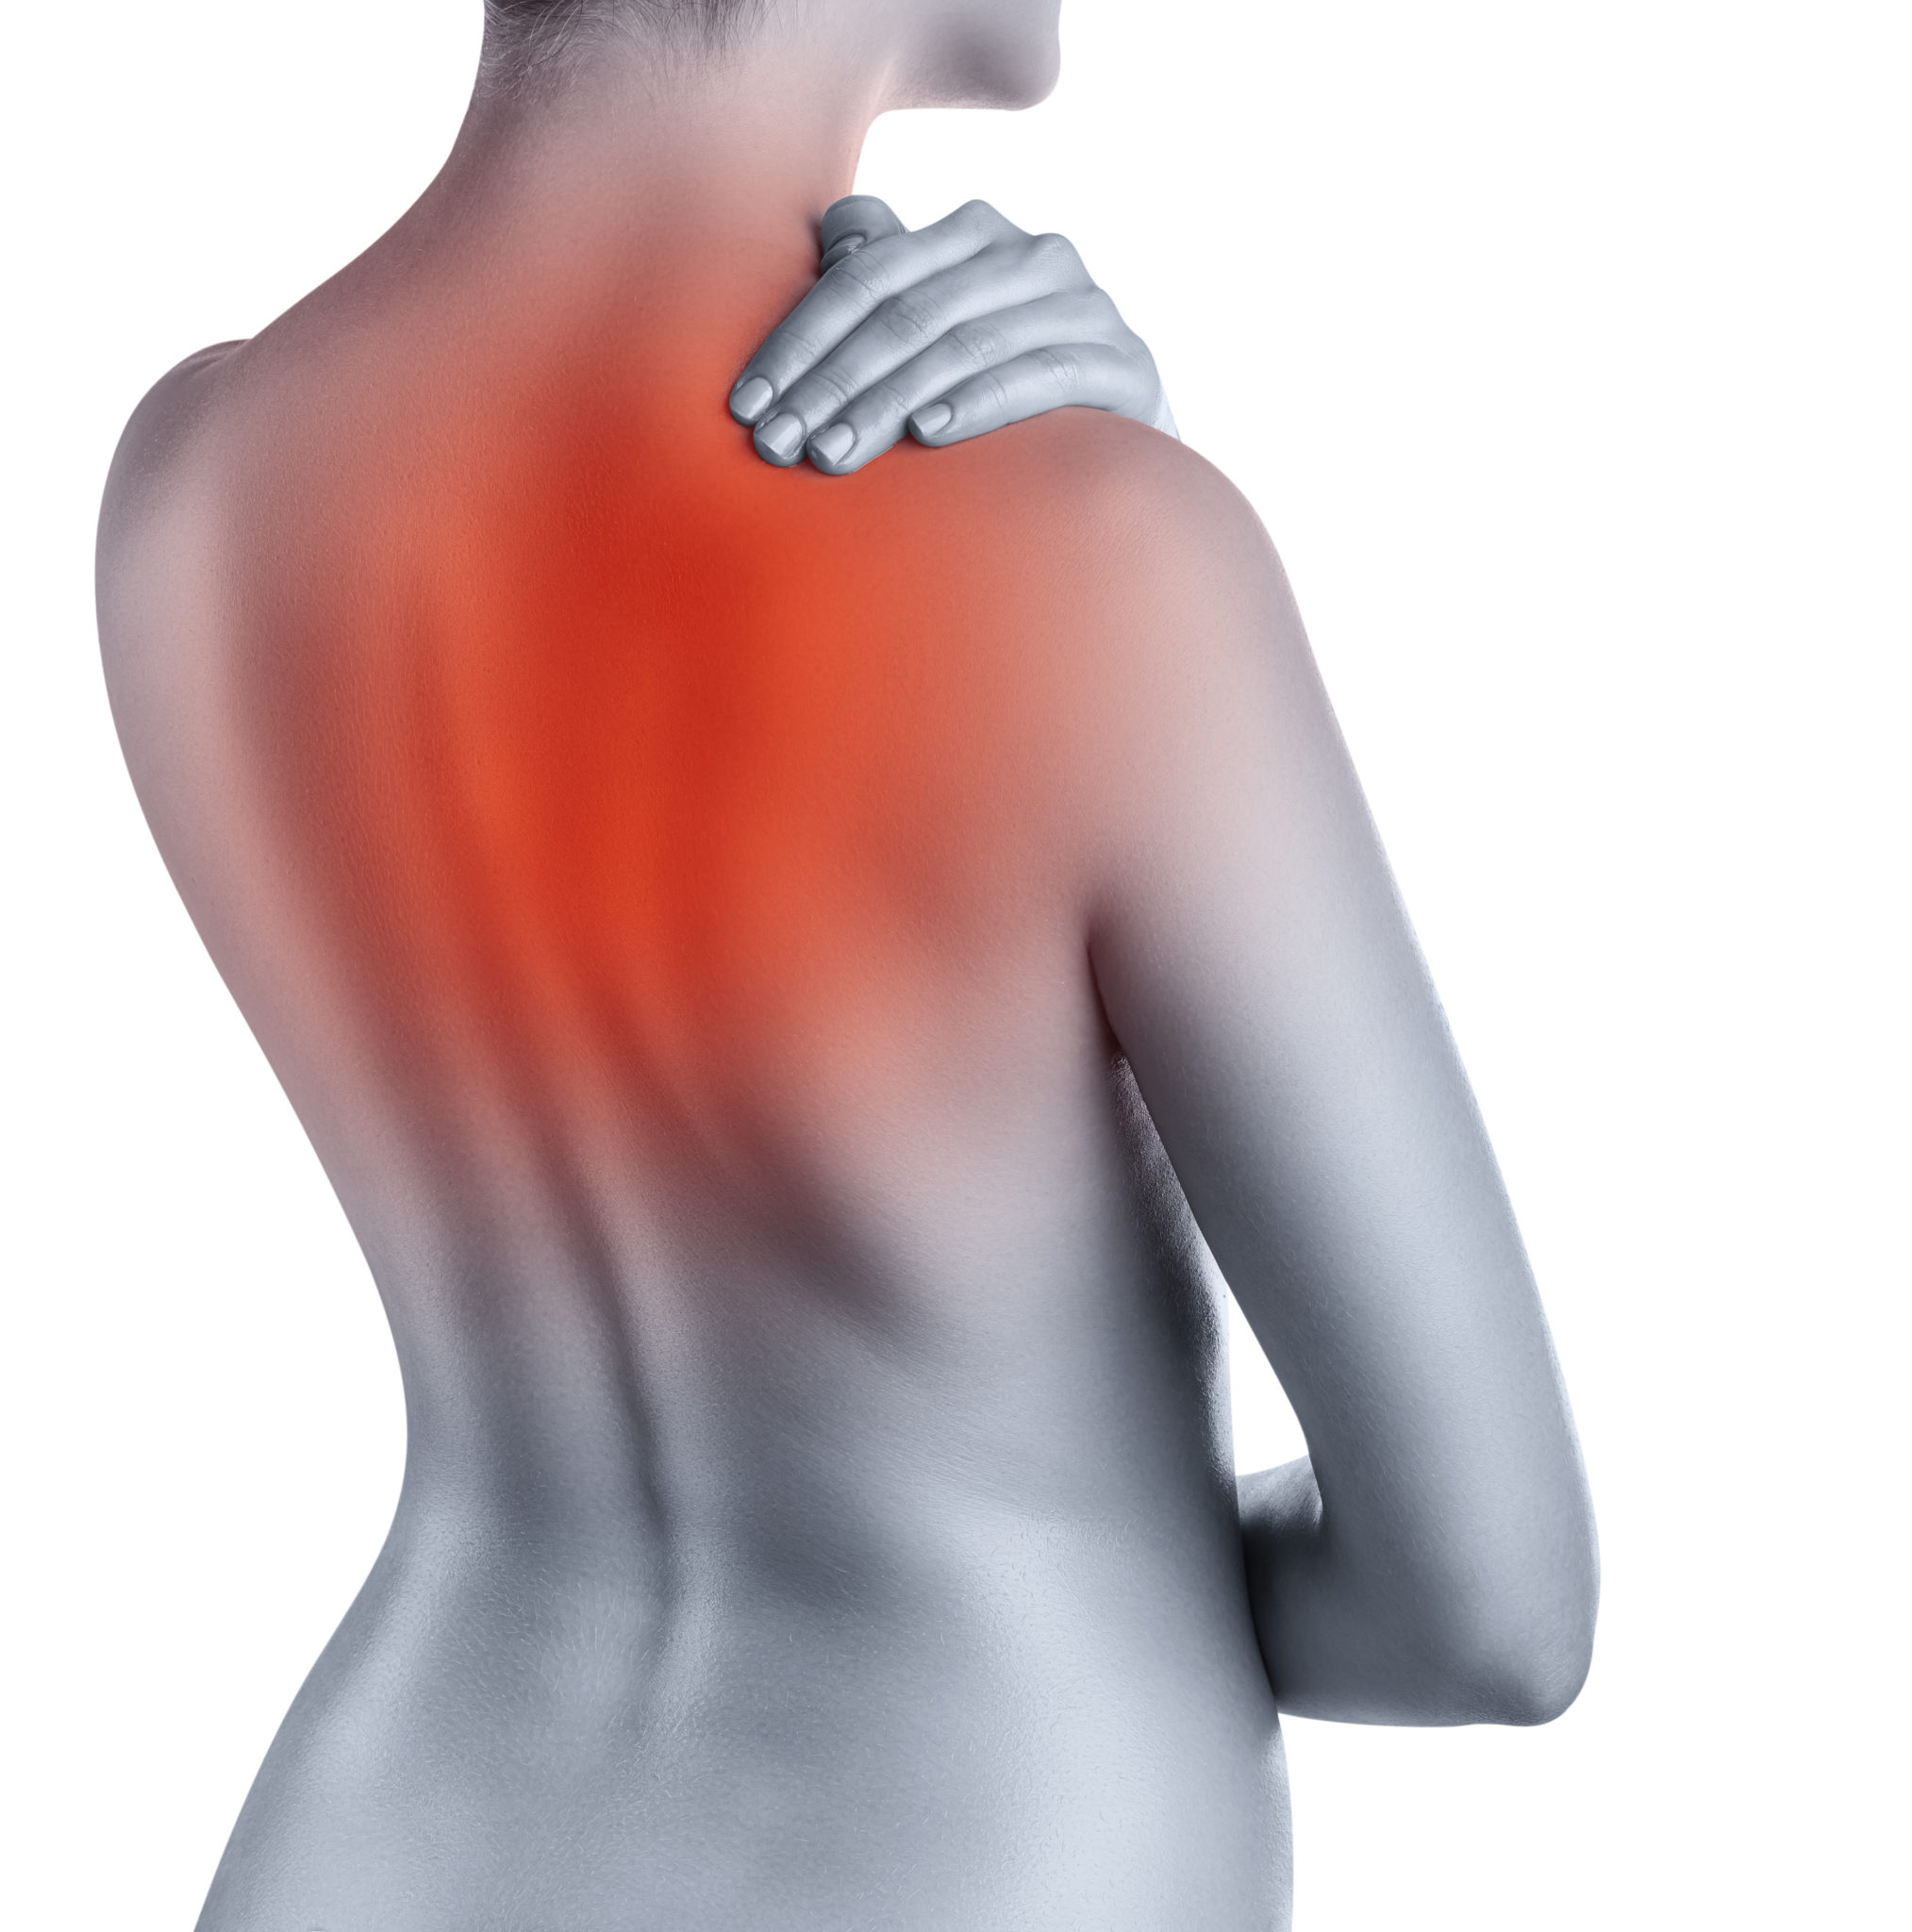 Treat Low Back Pain in Athletes